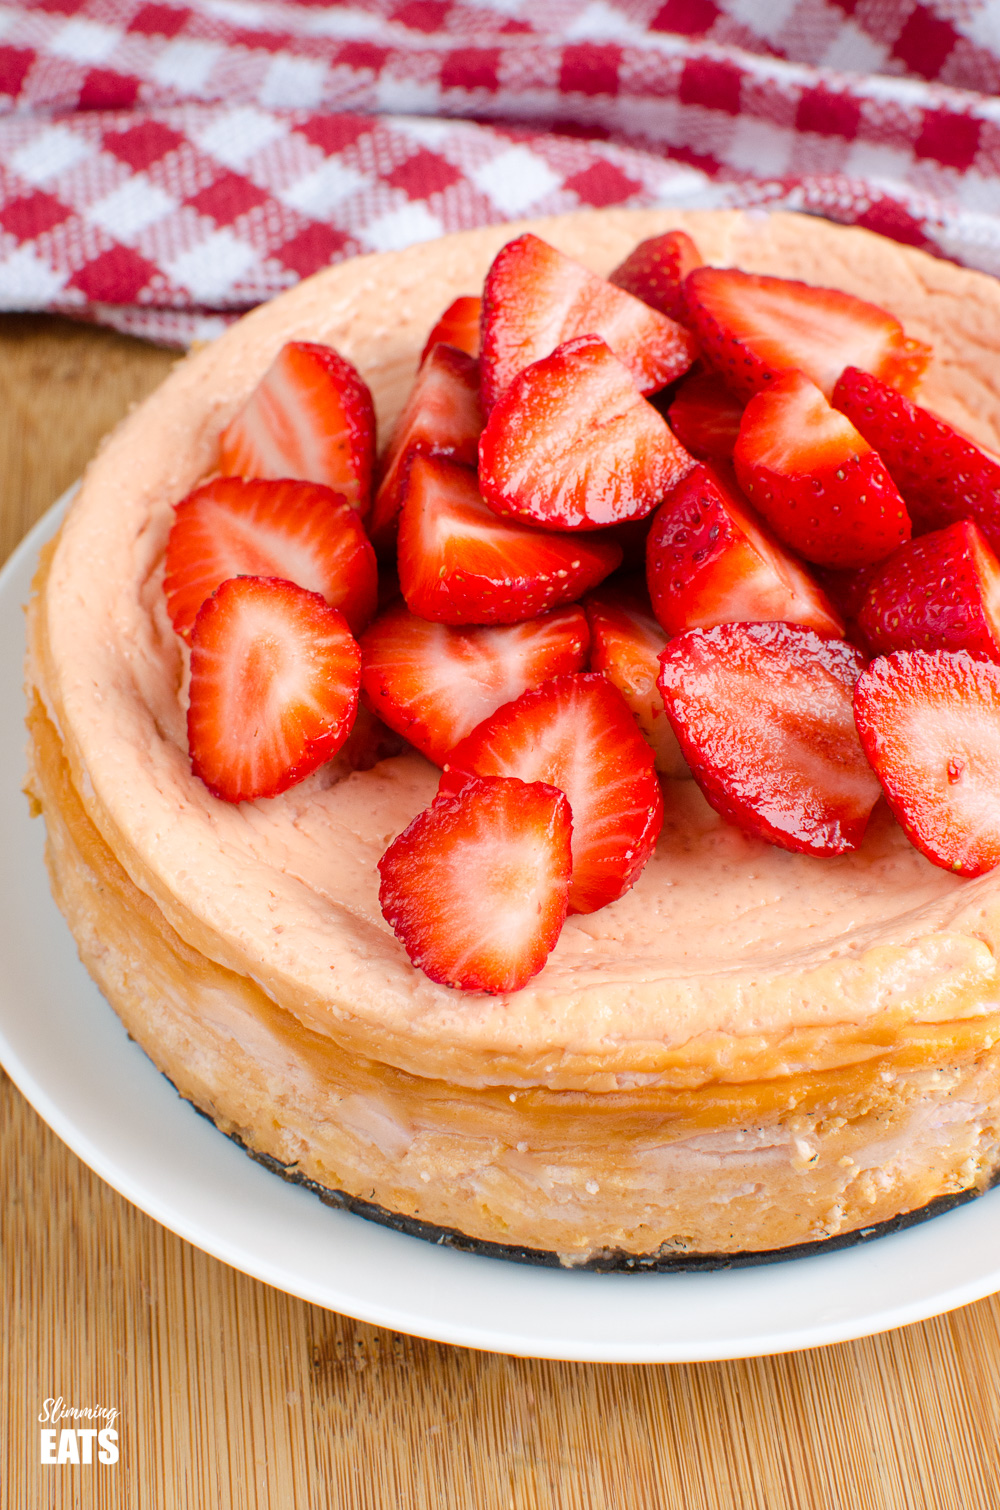 baked strawberry cheesecake on white plate with red chequed towel behind